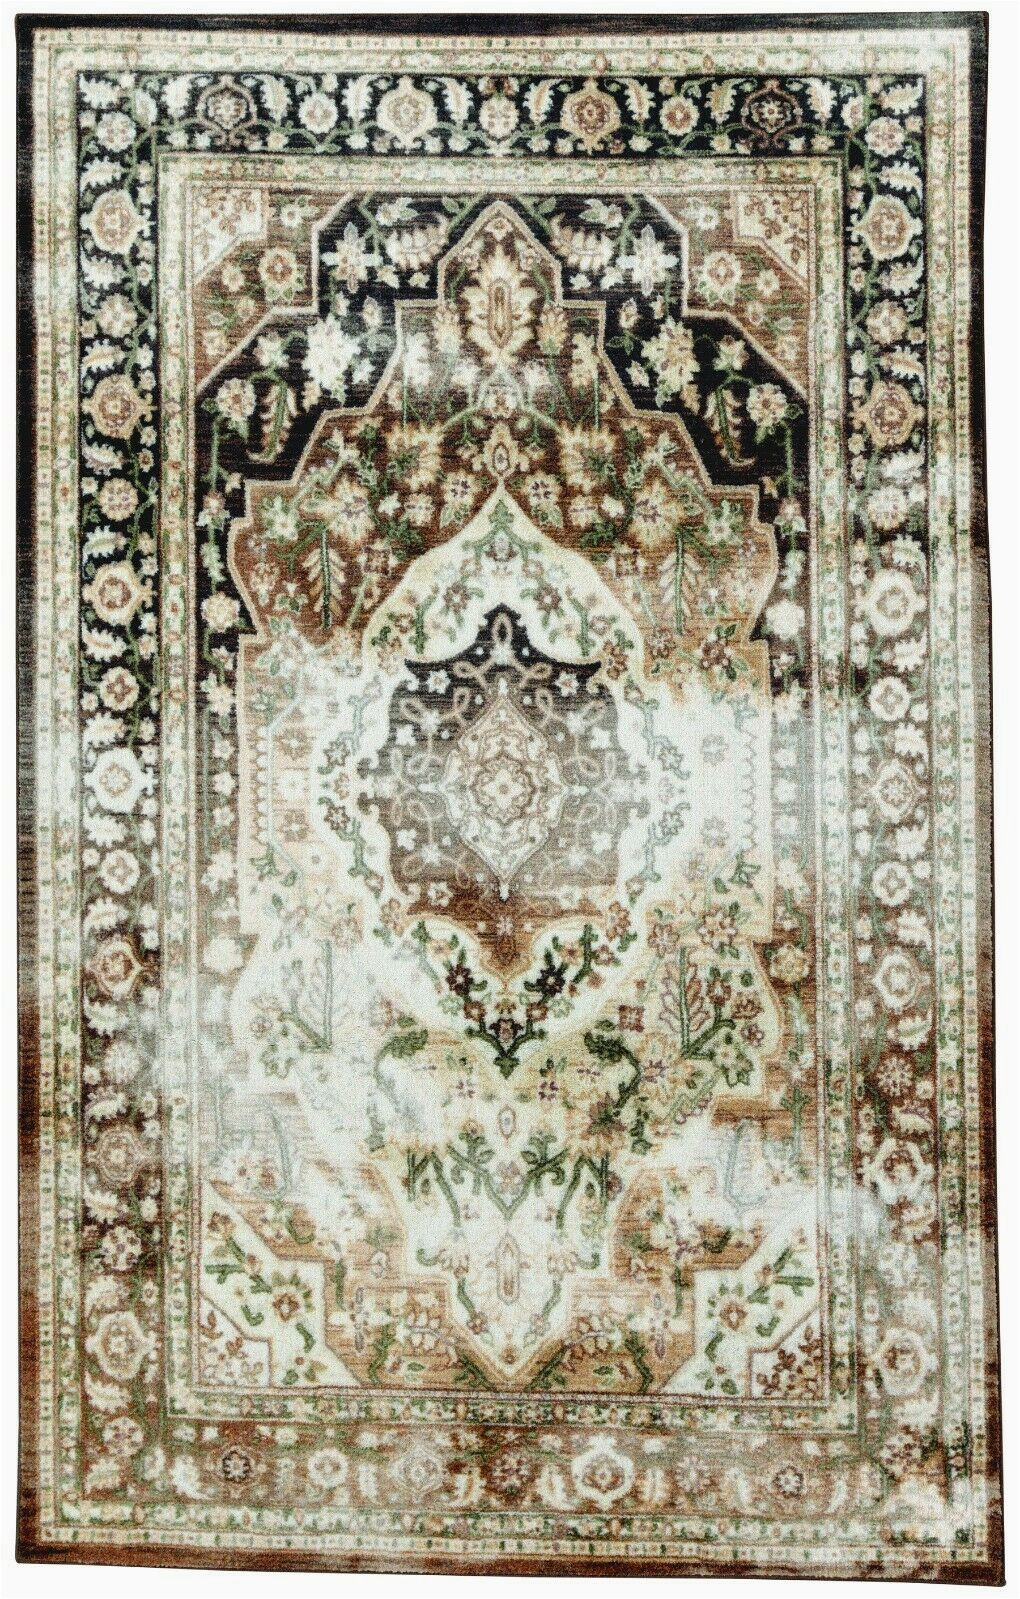 8 by 10 area Rugs for Sale Mohawk Ketoa 8 X 10 area Rug In Chocolate